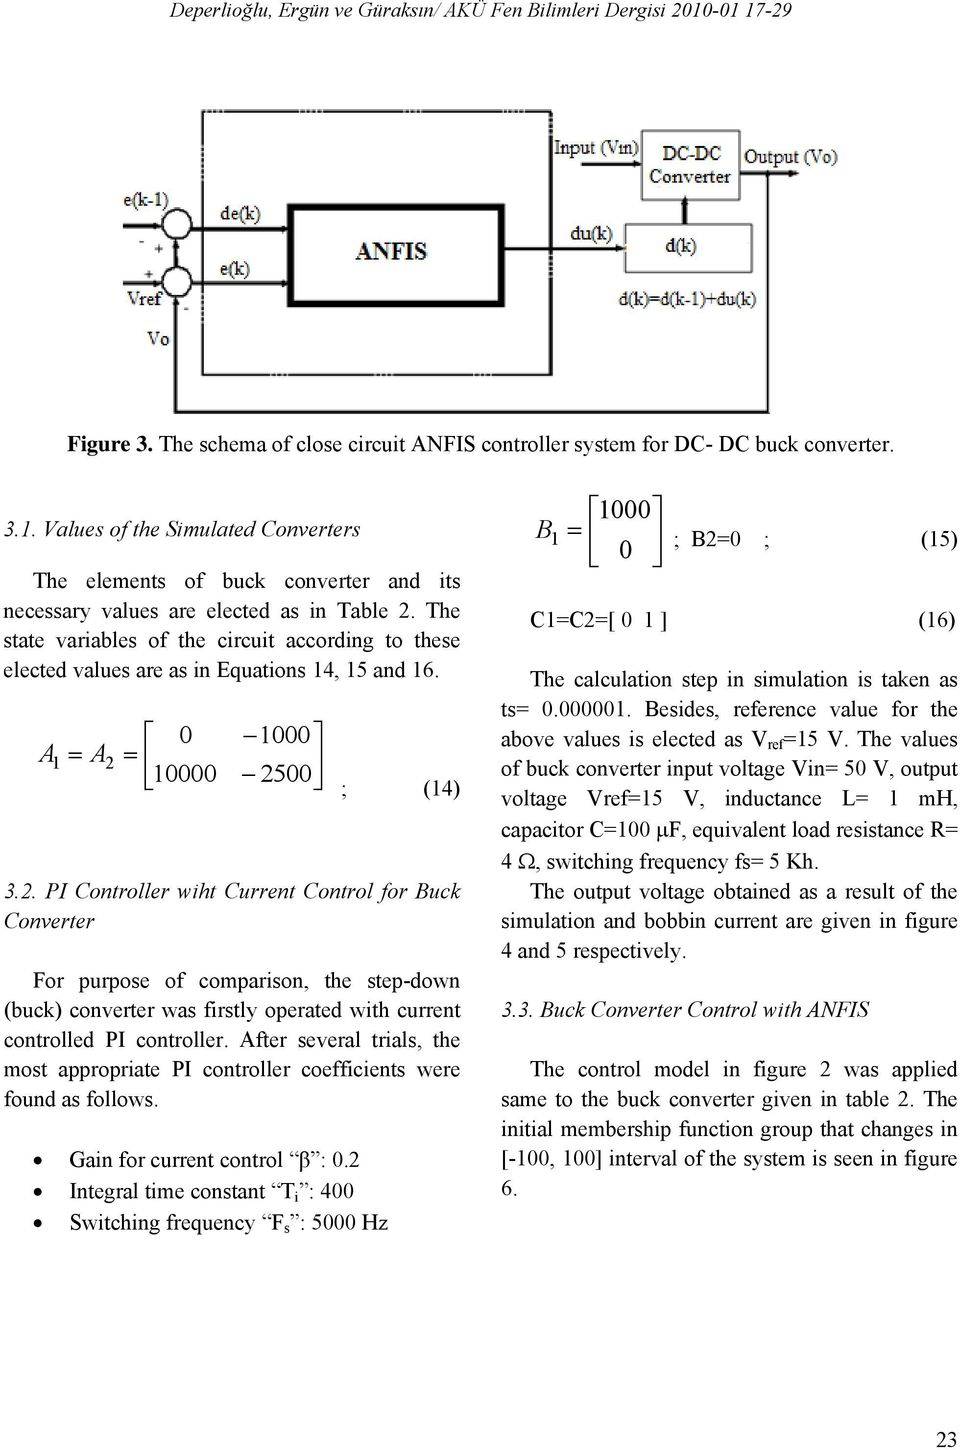 . PI Controller ht Current Control for Buck Converter For purpose of comparson, the step-don (buck) converter as frstl operated th current controlled PI controller.